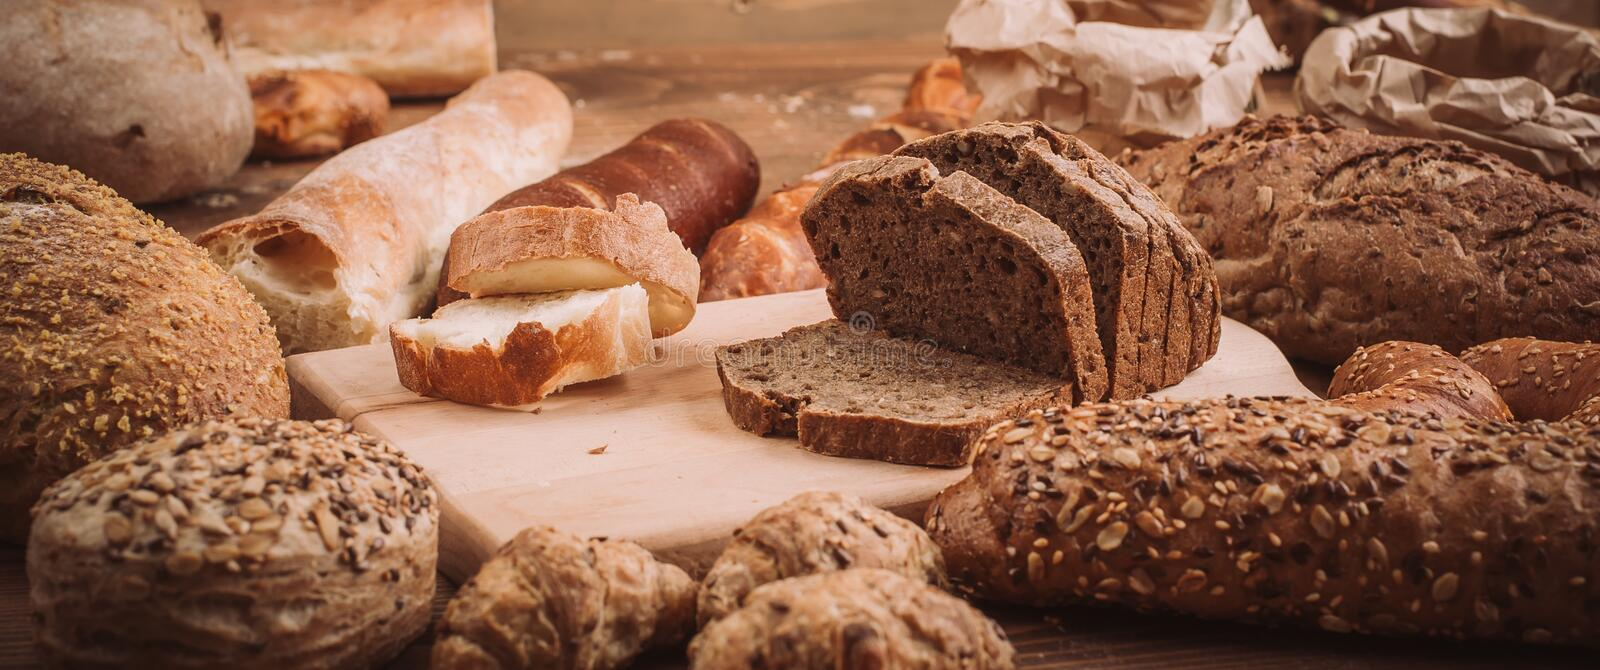 Various baked breads and rolls on rustic wooden table royalty free stock photography